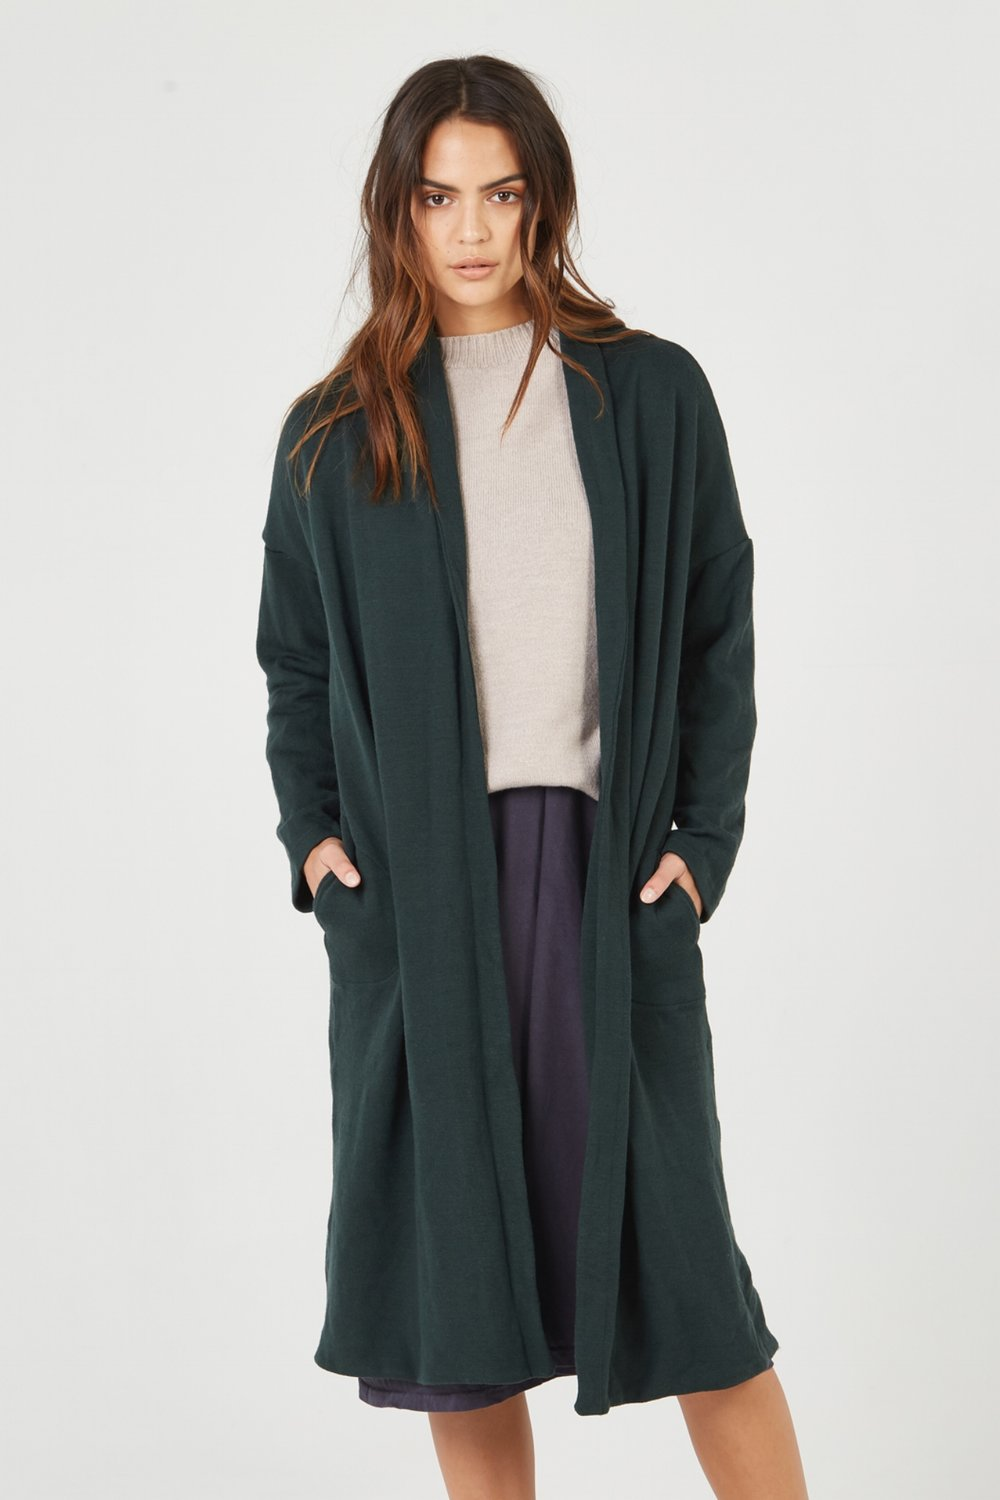 BOX STRAIGHT DRESS SMOKED CHARCOAL. LOOM CREW NECK OATMEAL. LUXE JACKET JUNIPER